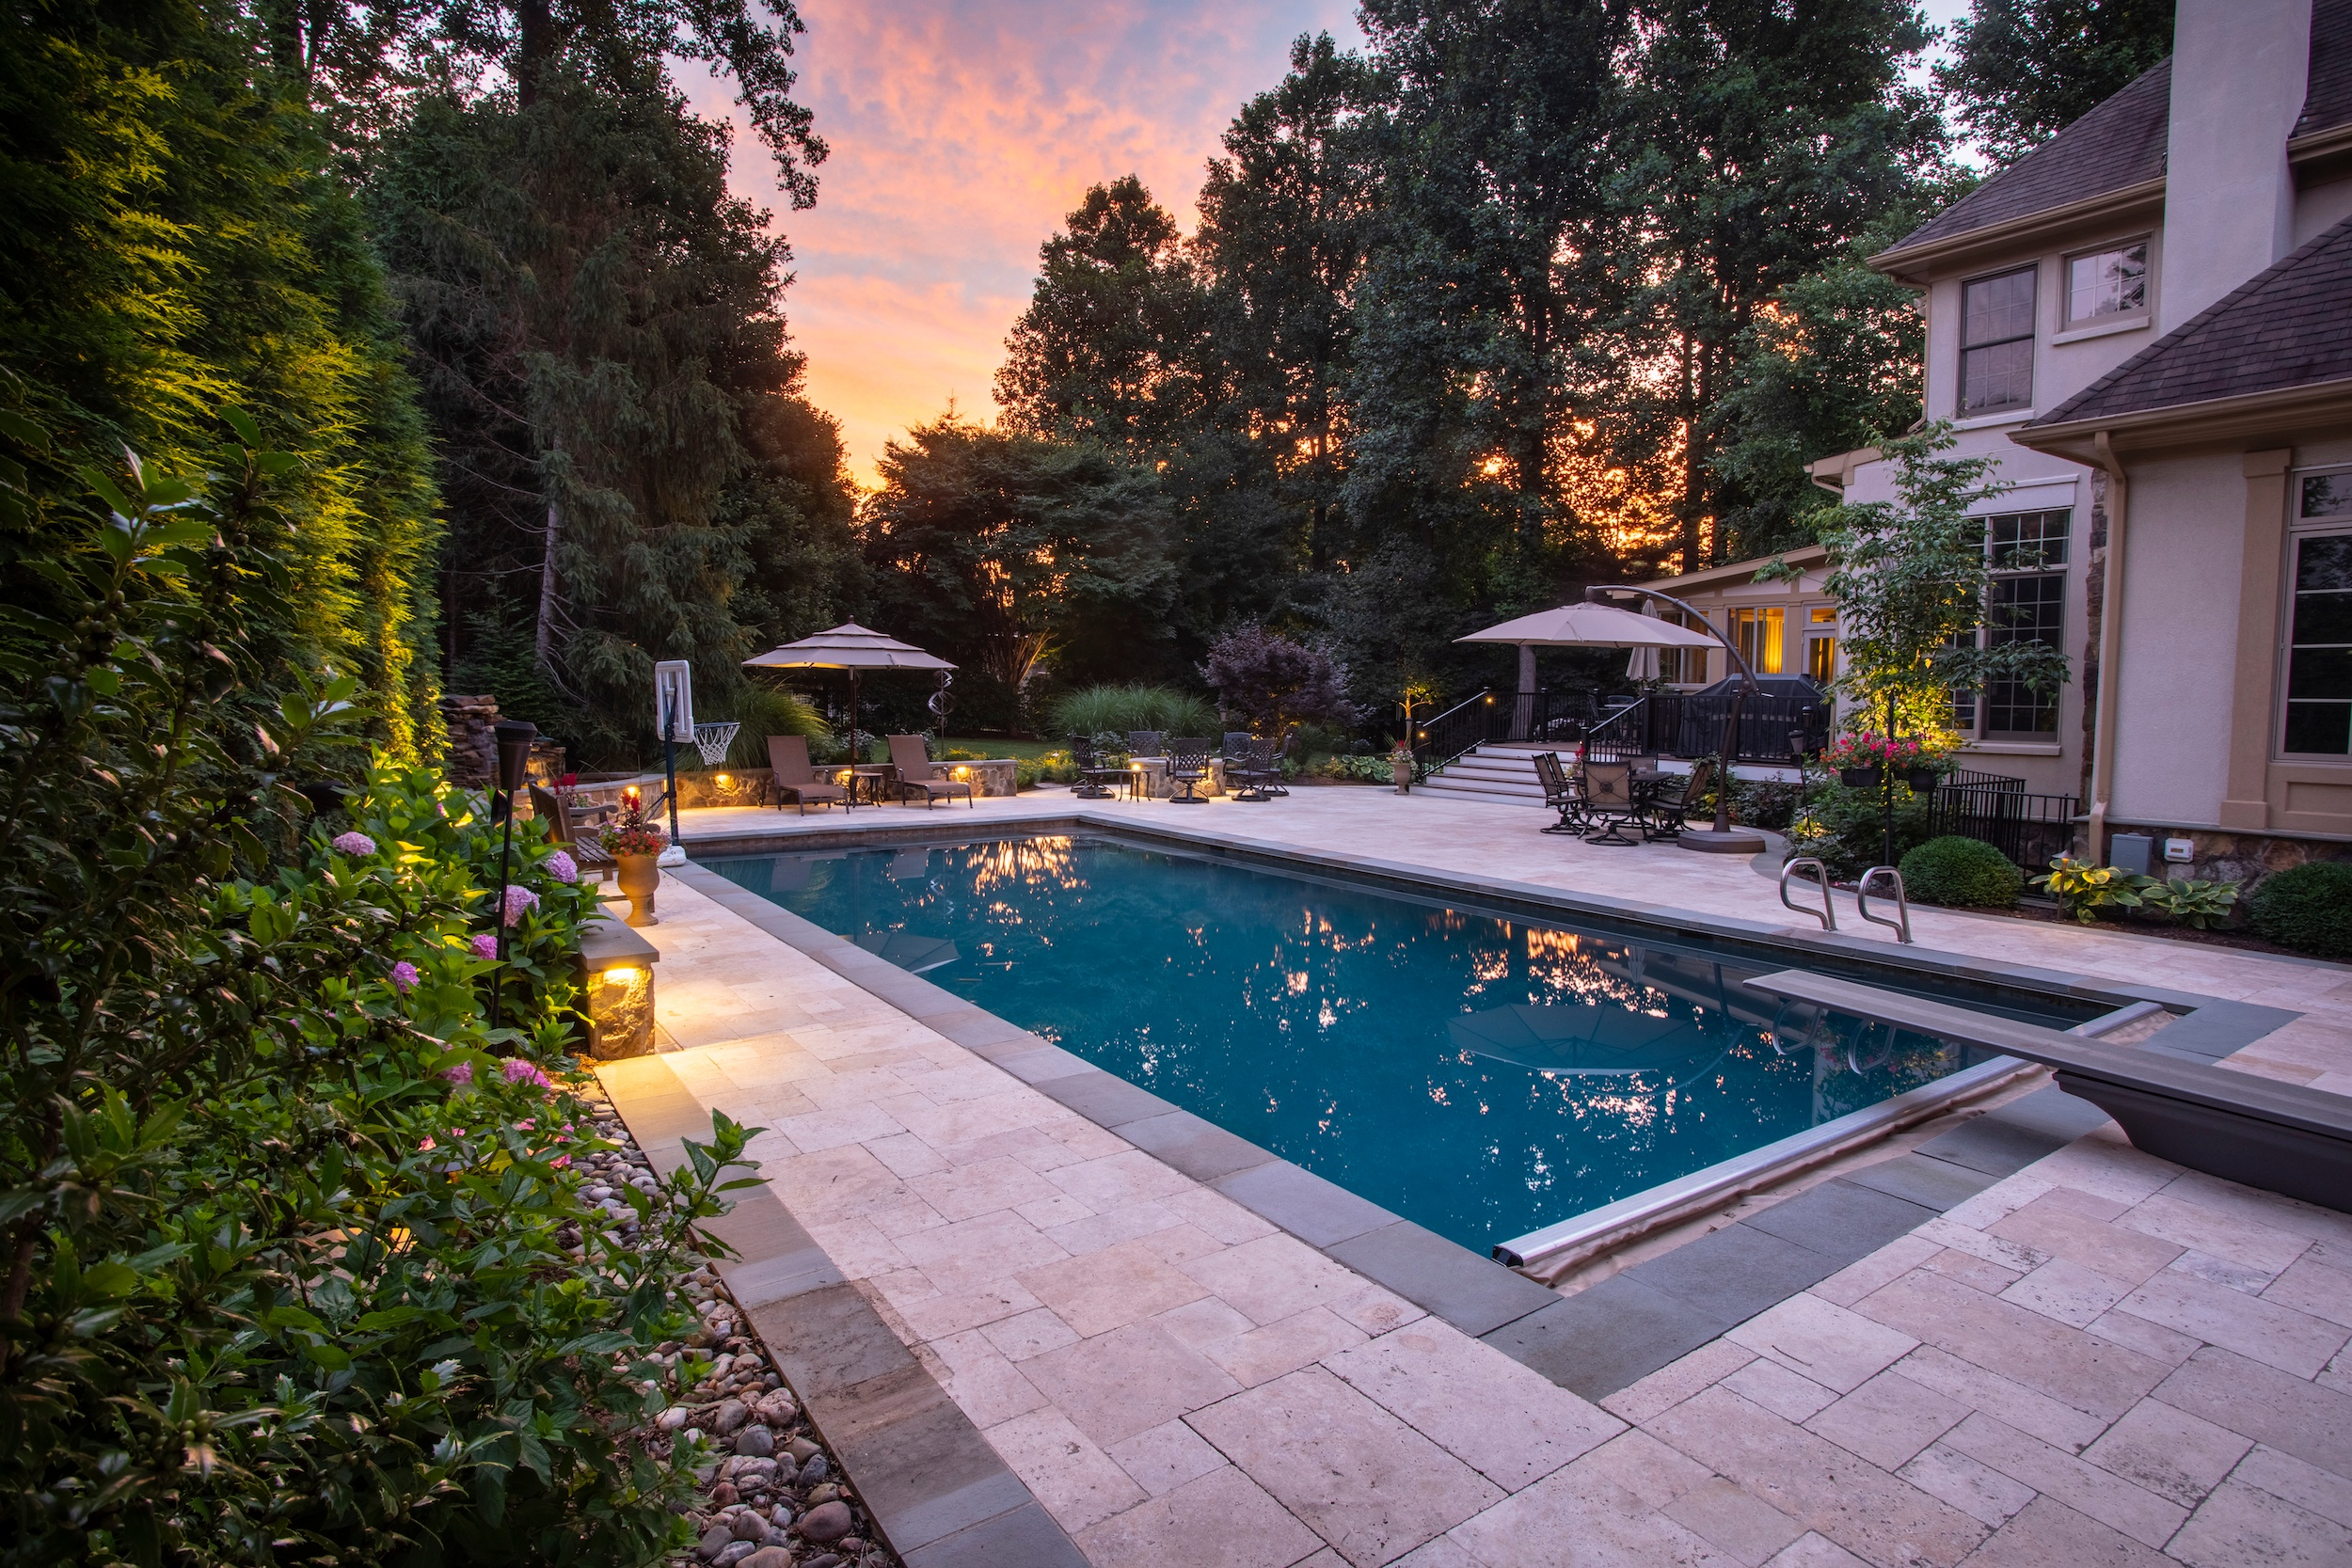 Great Falls, VA Landscape Design Case Study: The Perfect Mix of Stone, Plants, and Lighting